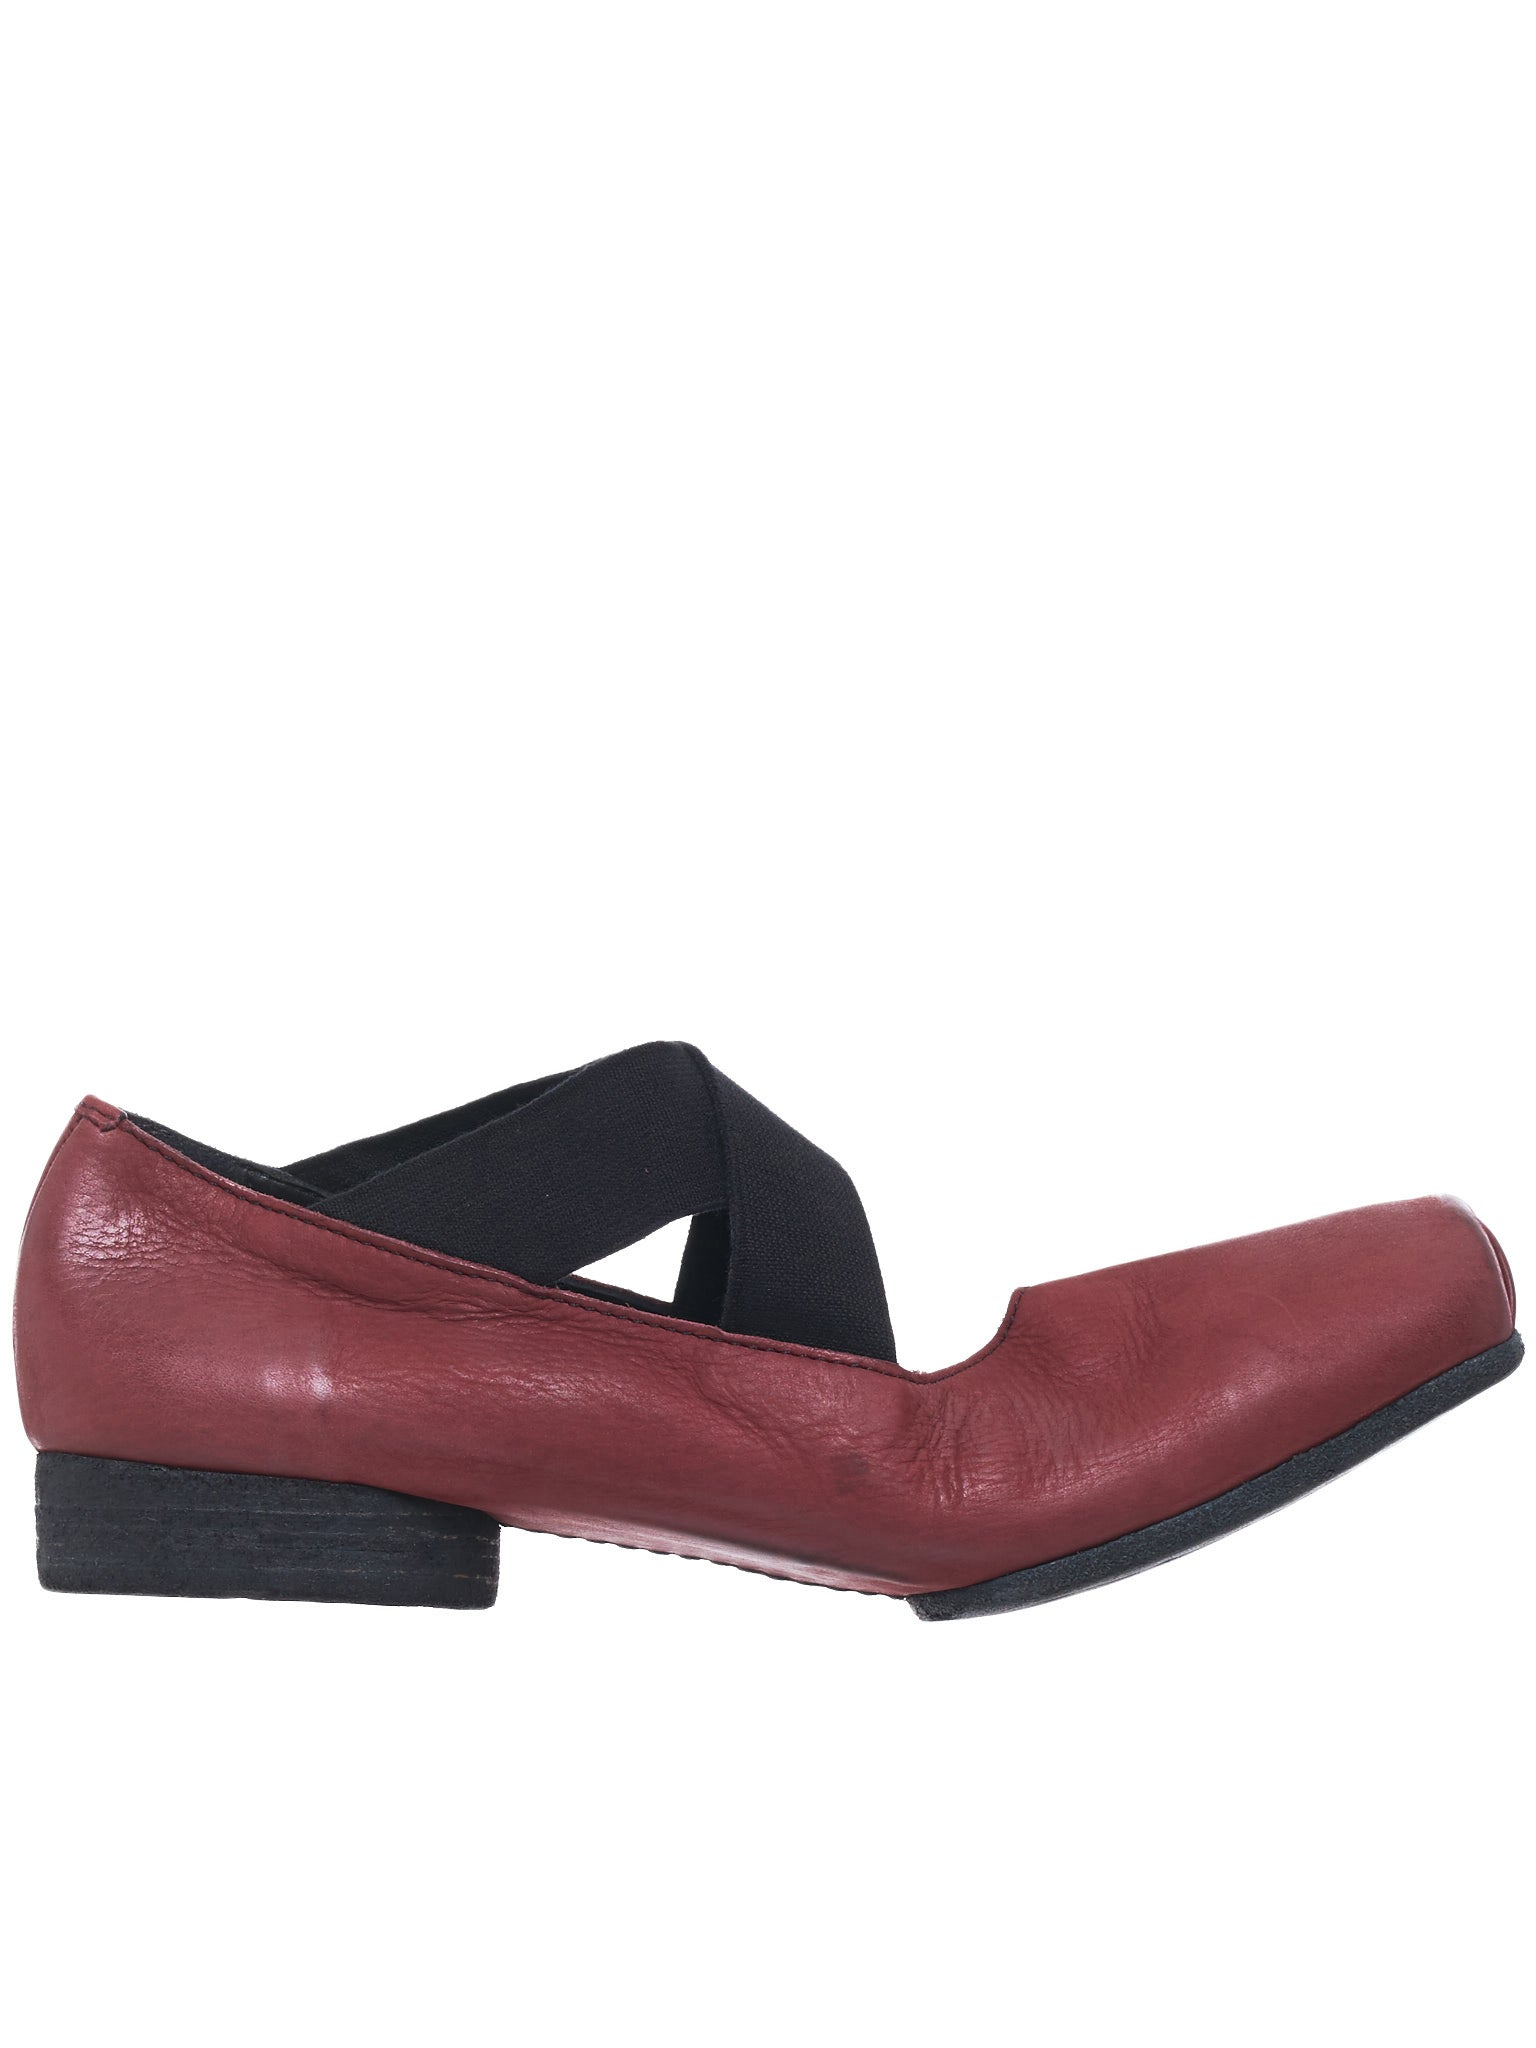 Leather Ballet Shoes (US9003-RED-BLACK)